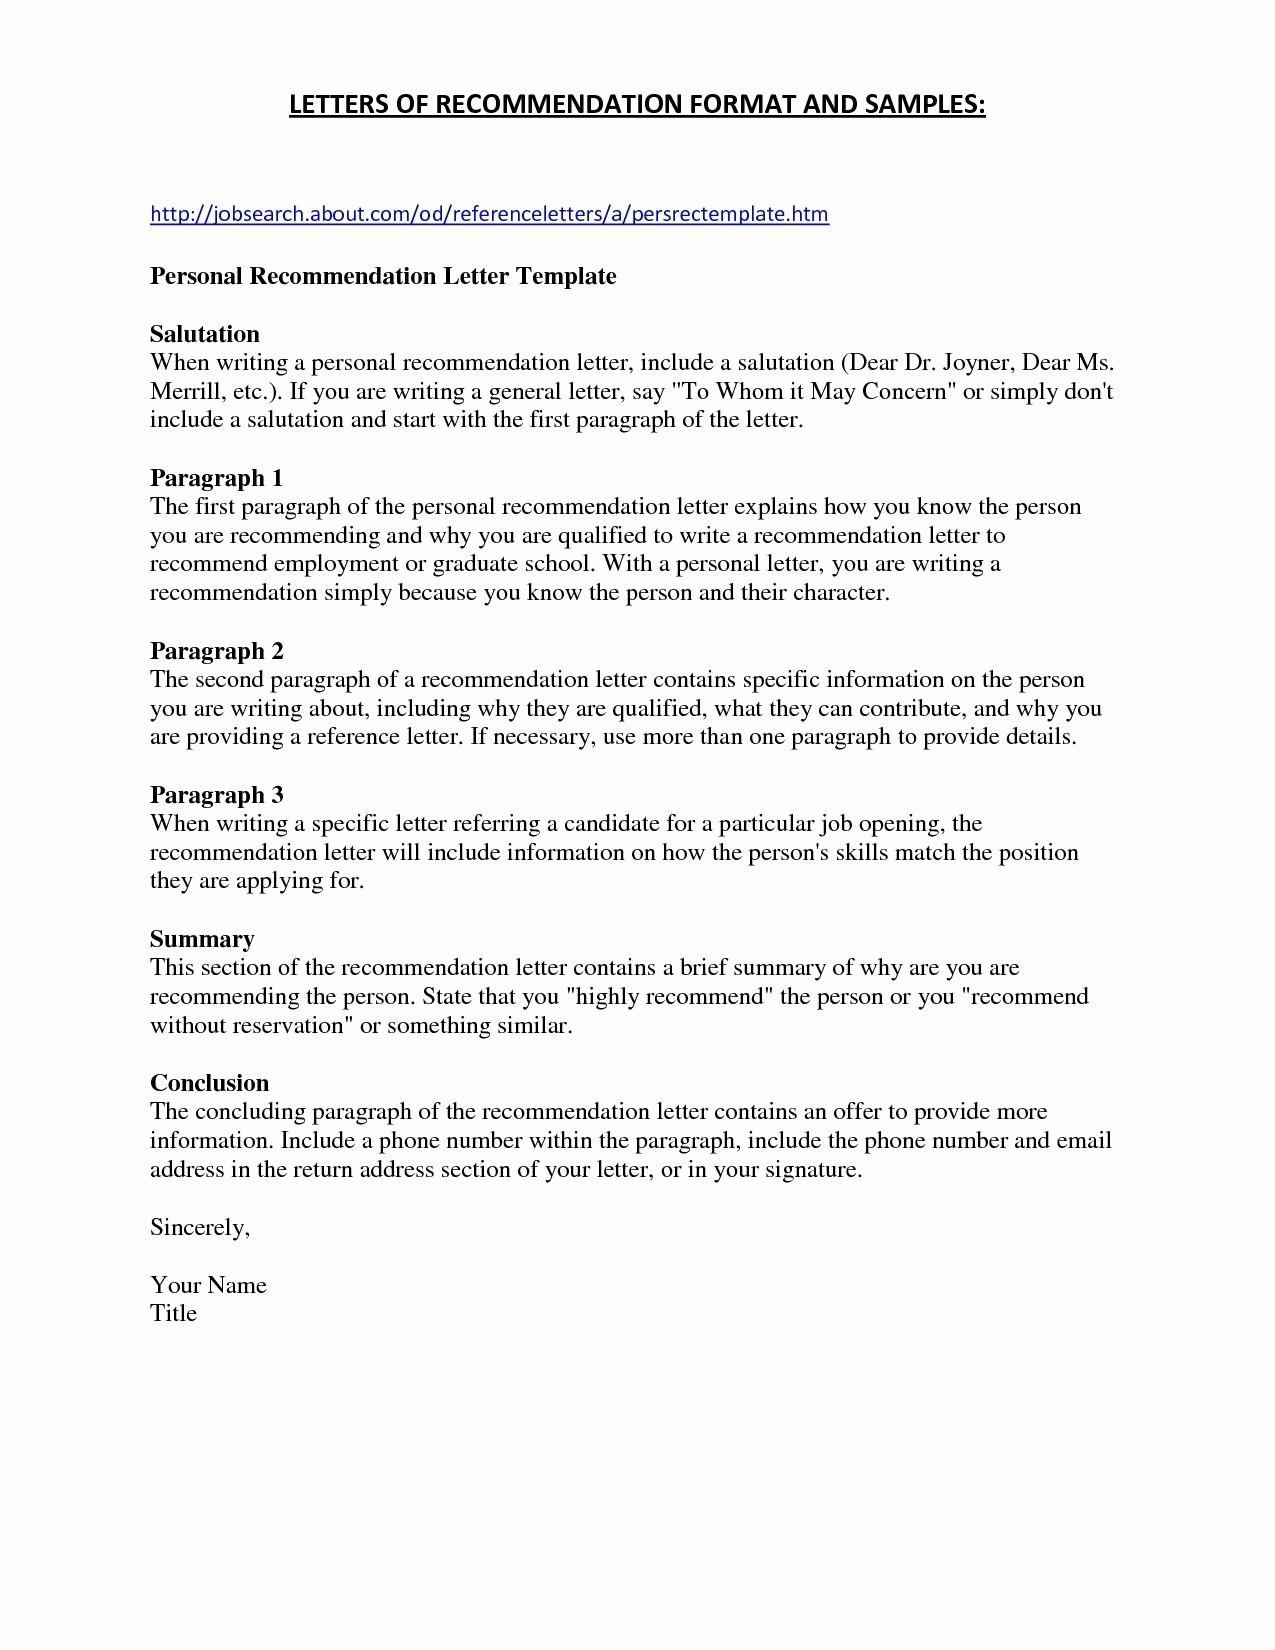 Office Clerk Job Description for Resume - Fice Clerk Job Description for Resume